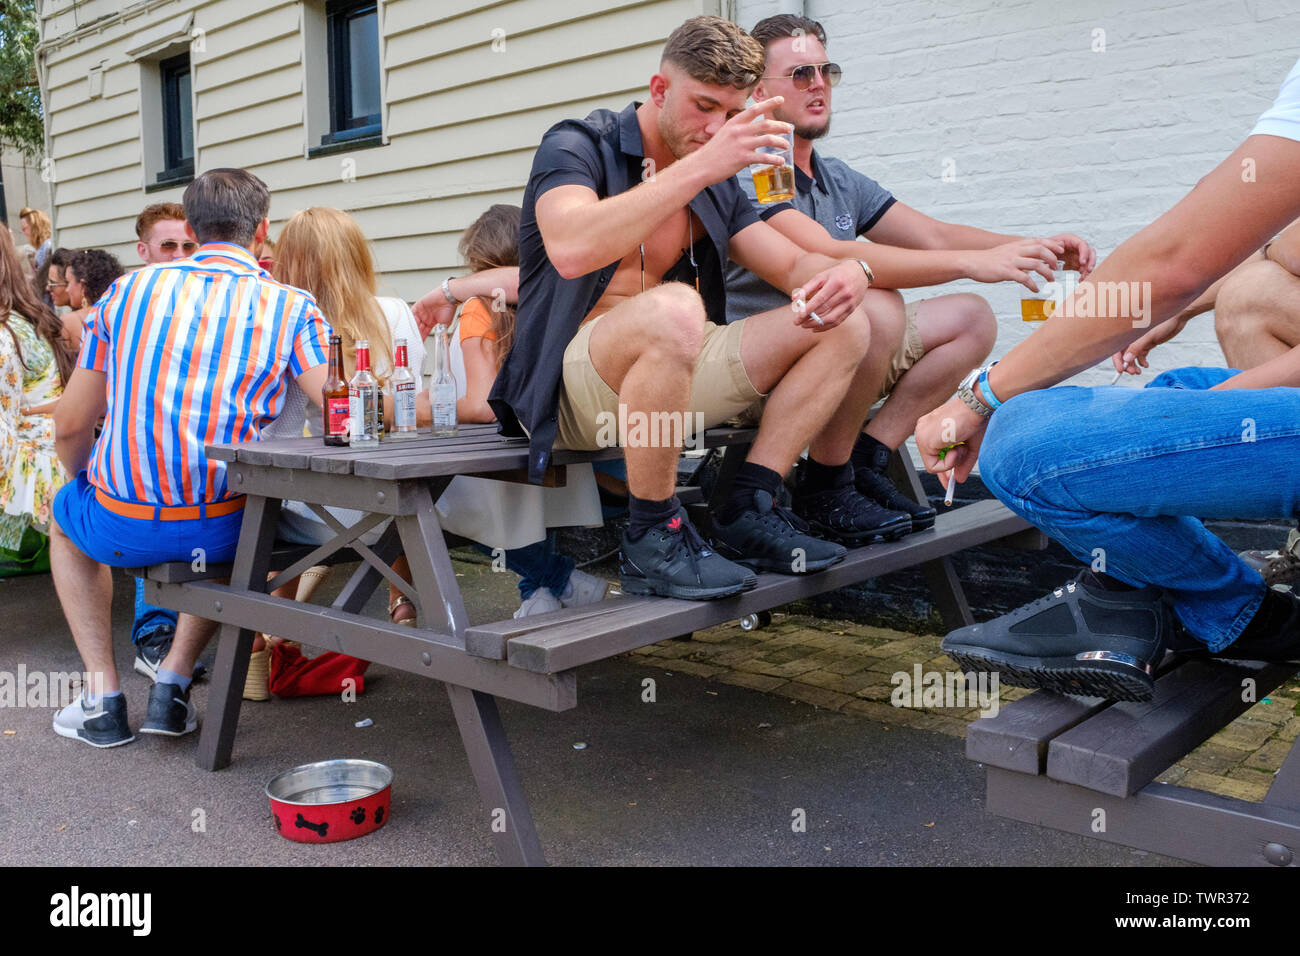 Cambridge, UK. 22nd June 2019. A crowded beer garden at Fort St George Pub. The Saturday of the historic annual midsummer fair attracts many traveller communities from around the UK. CamNews / Alamy Live News Stock Photo